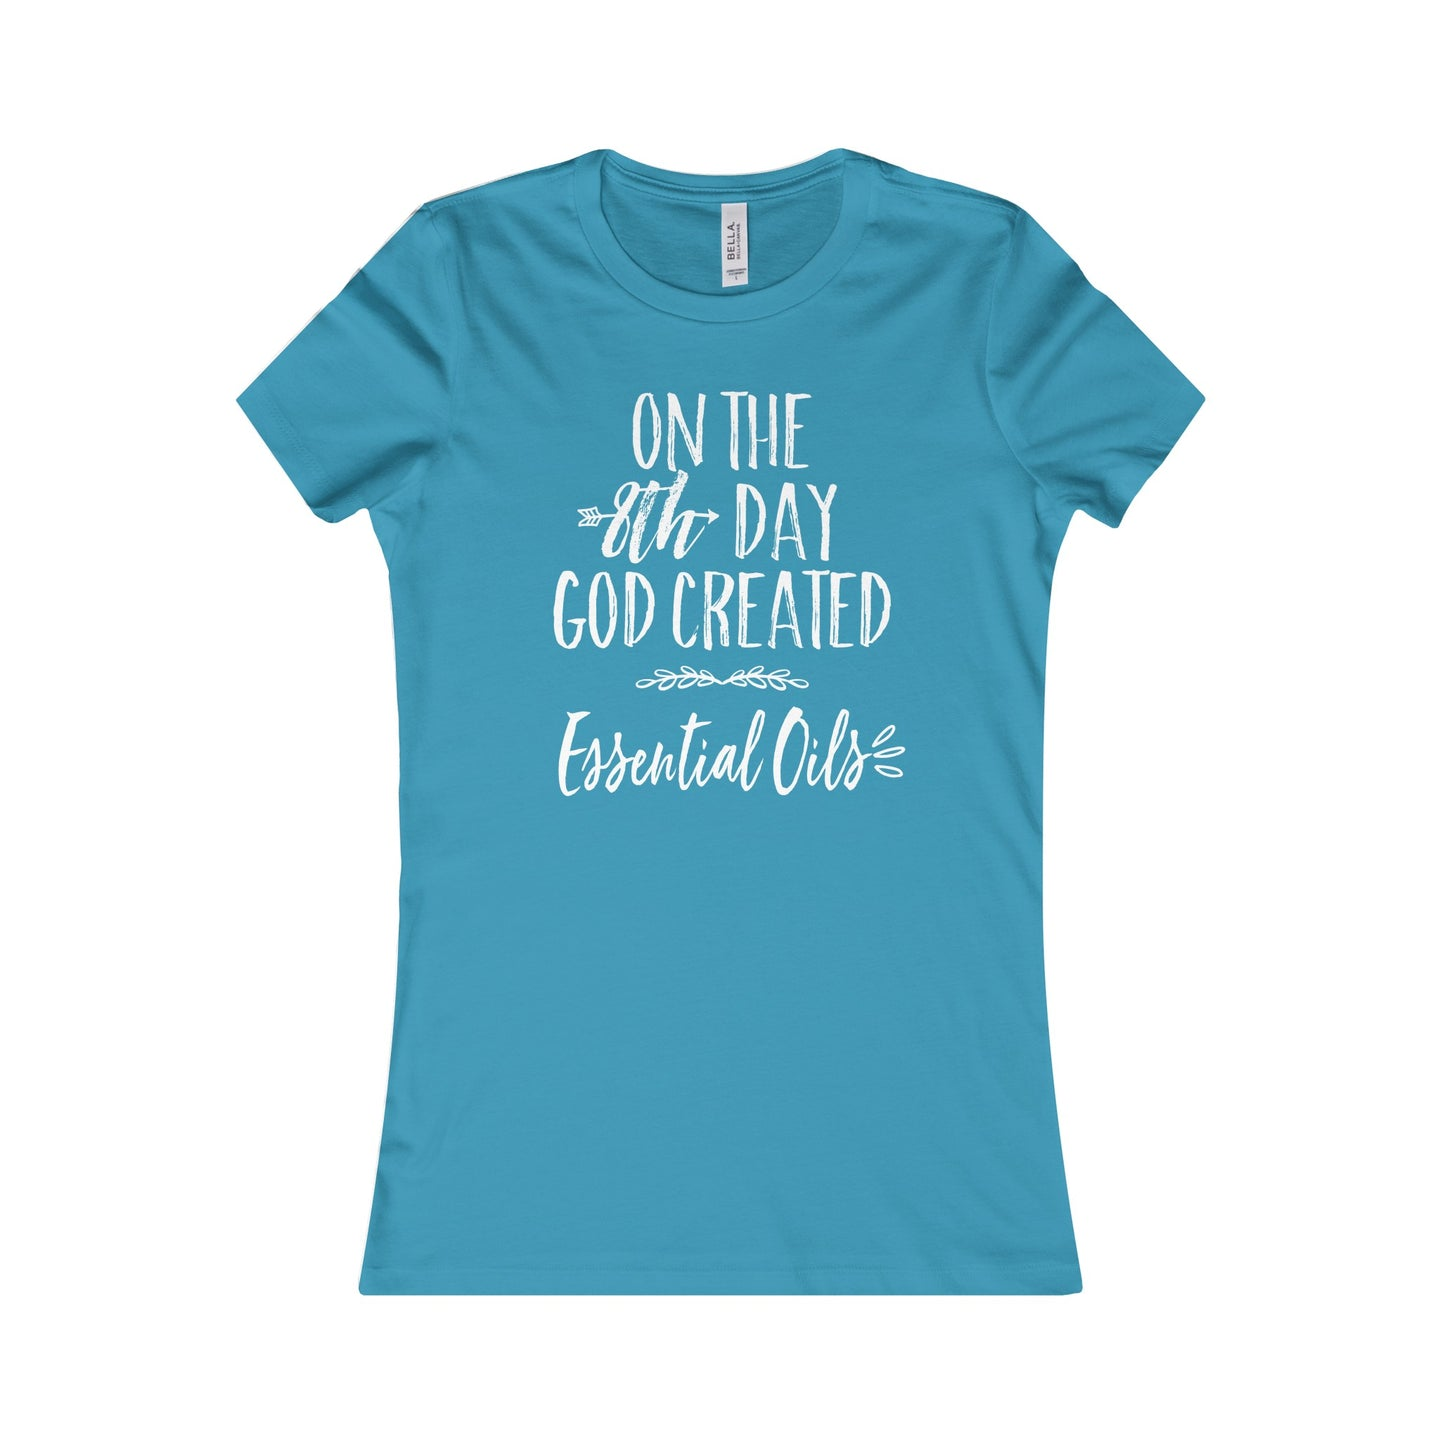 'On the 8th Day GOD Created Essential Oils' Women's Favorite Tee